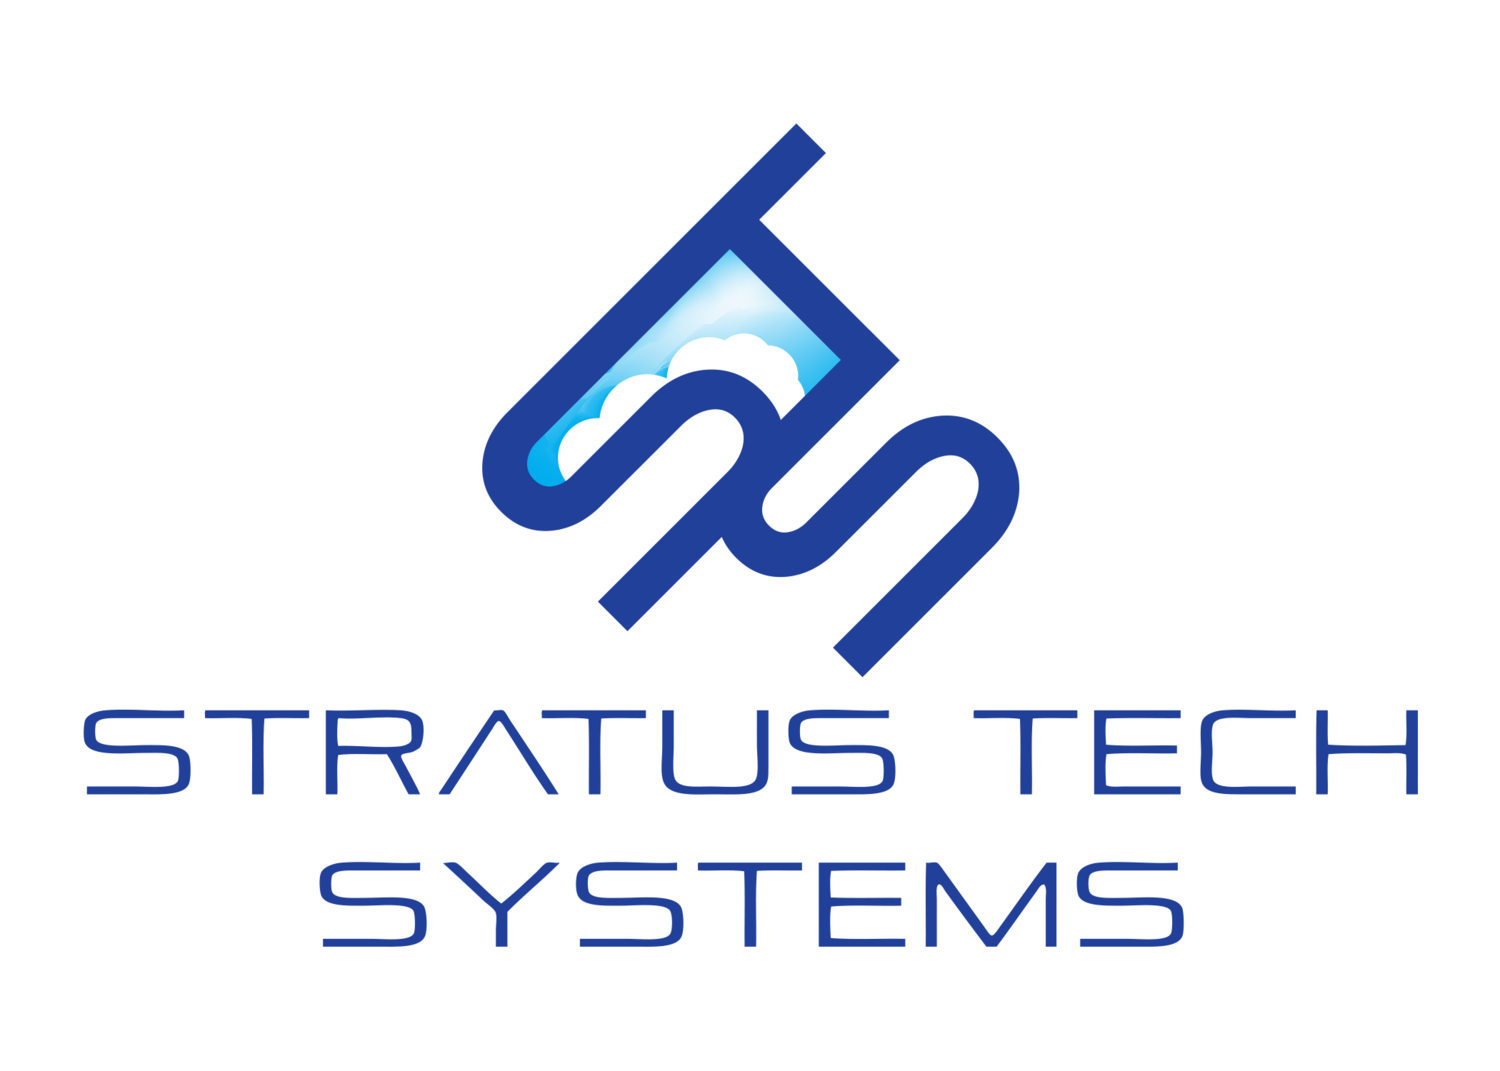 Stratus Tech Systems, LLC